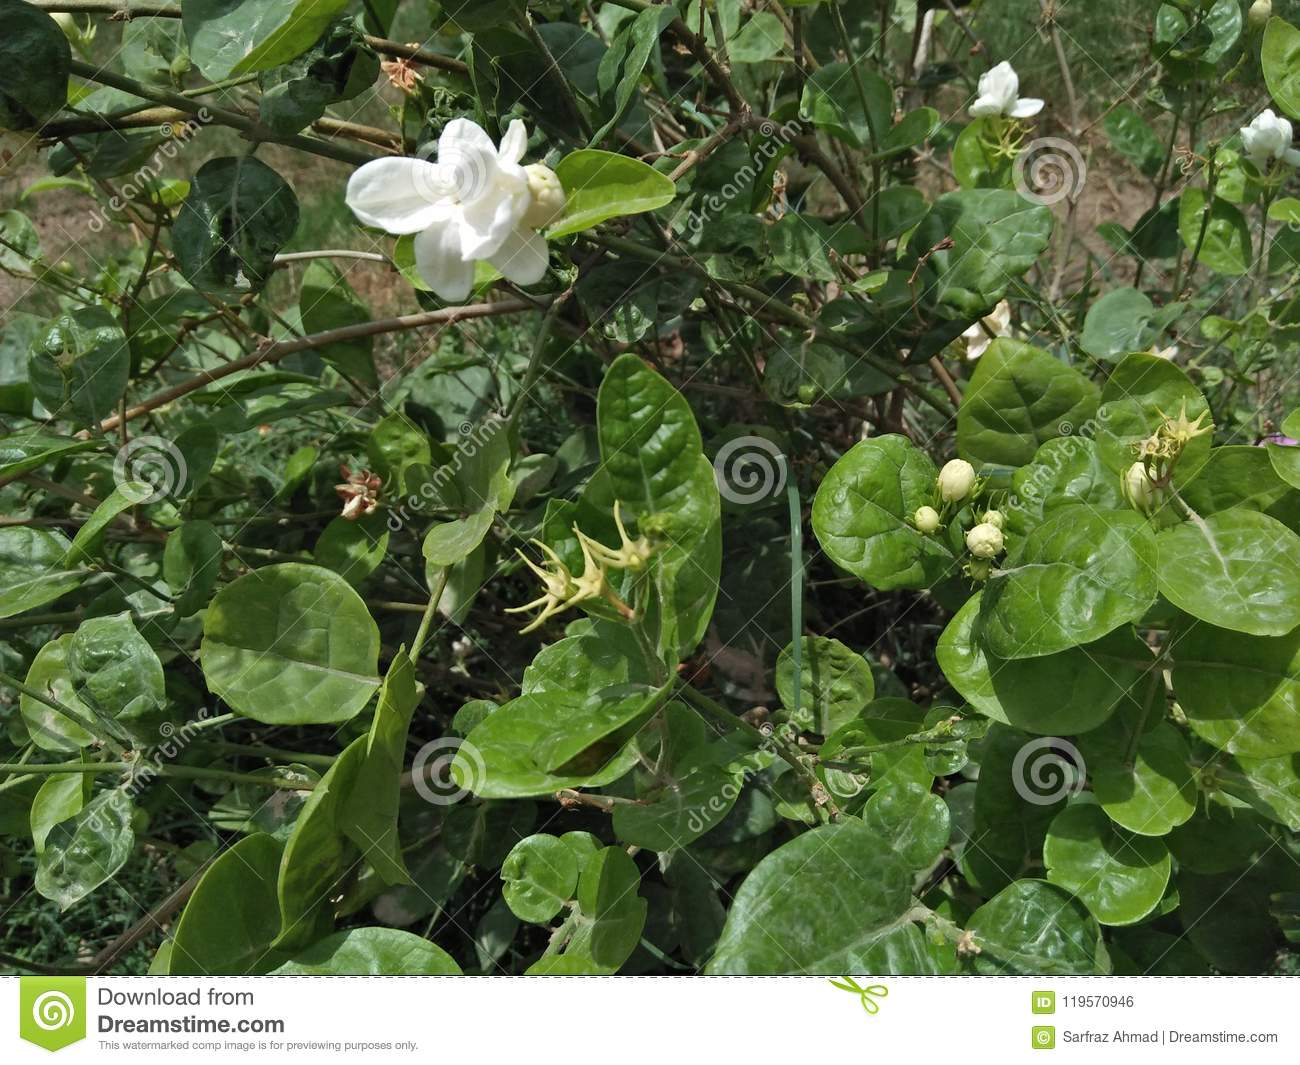 Jasmine Cultivation Stock Photo Image Of Cultivation 119570946